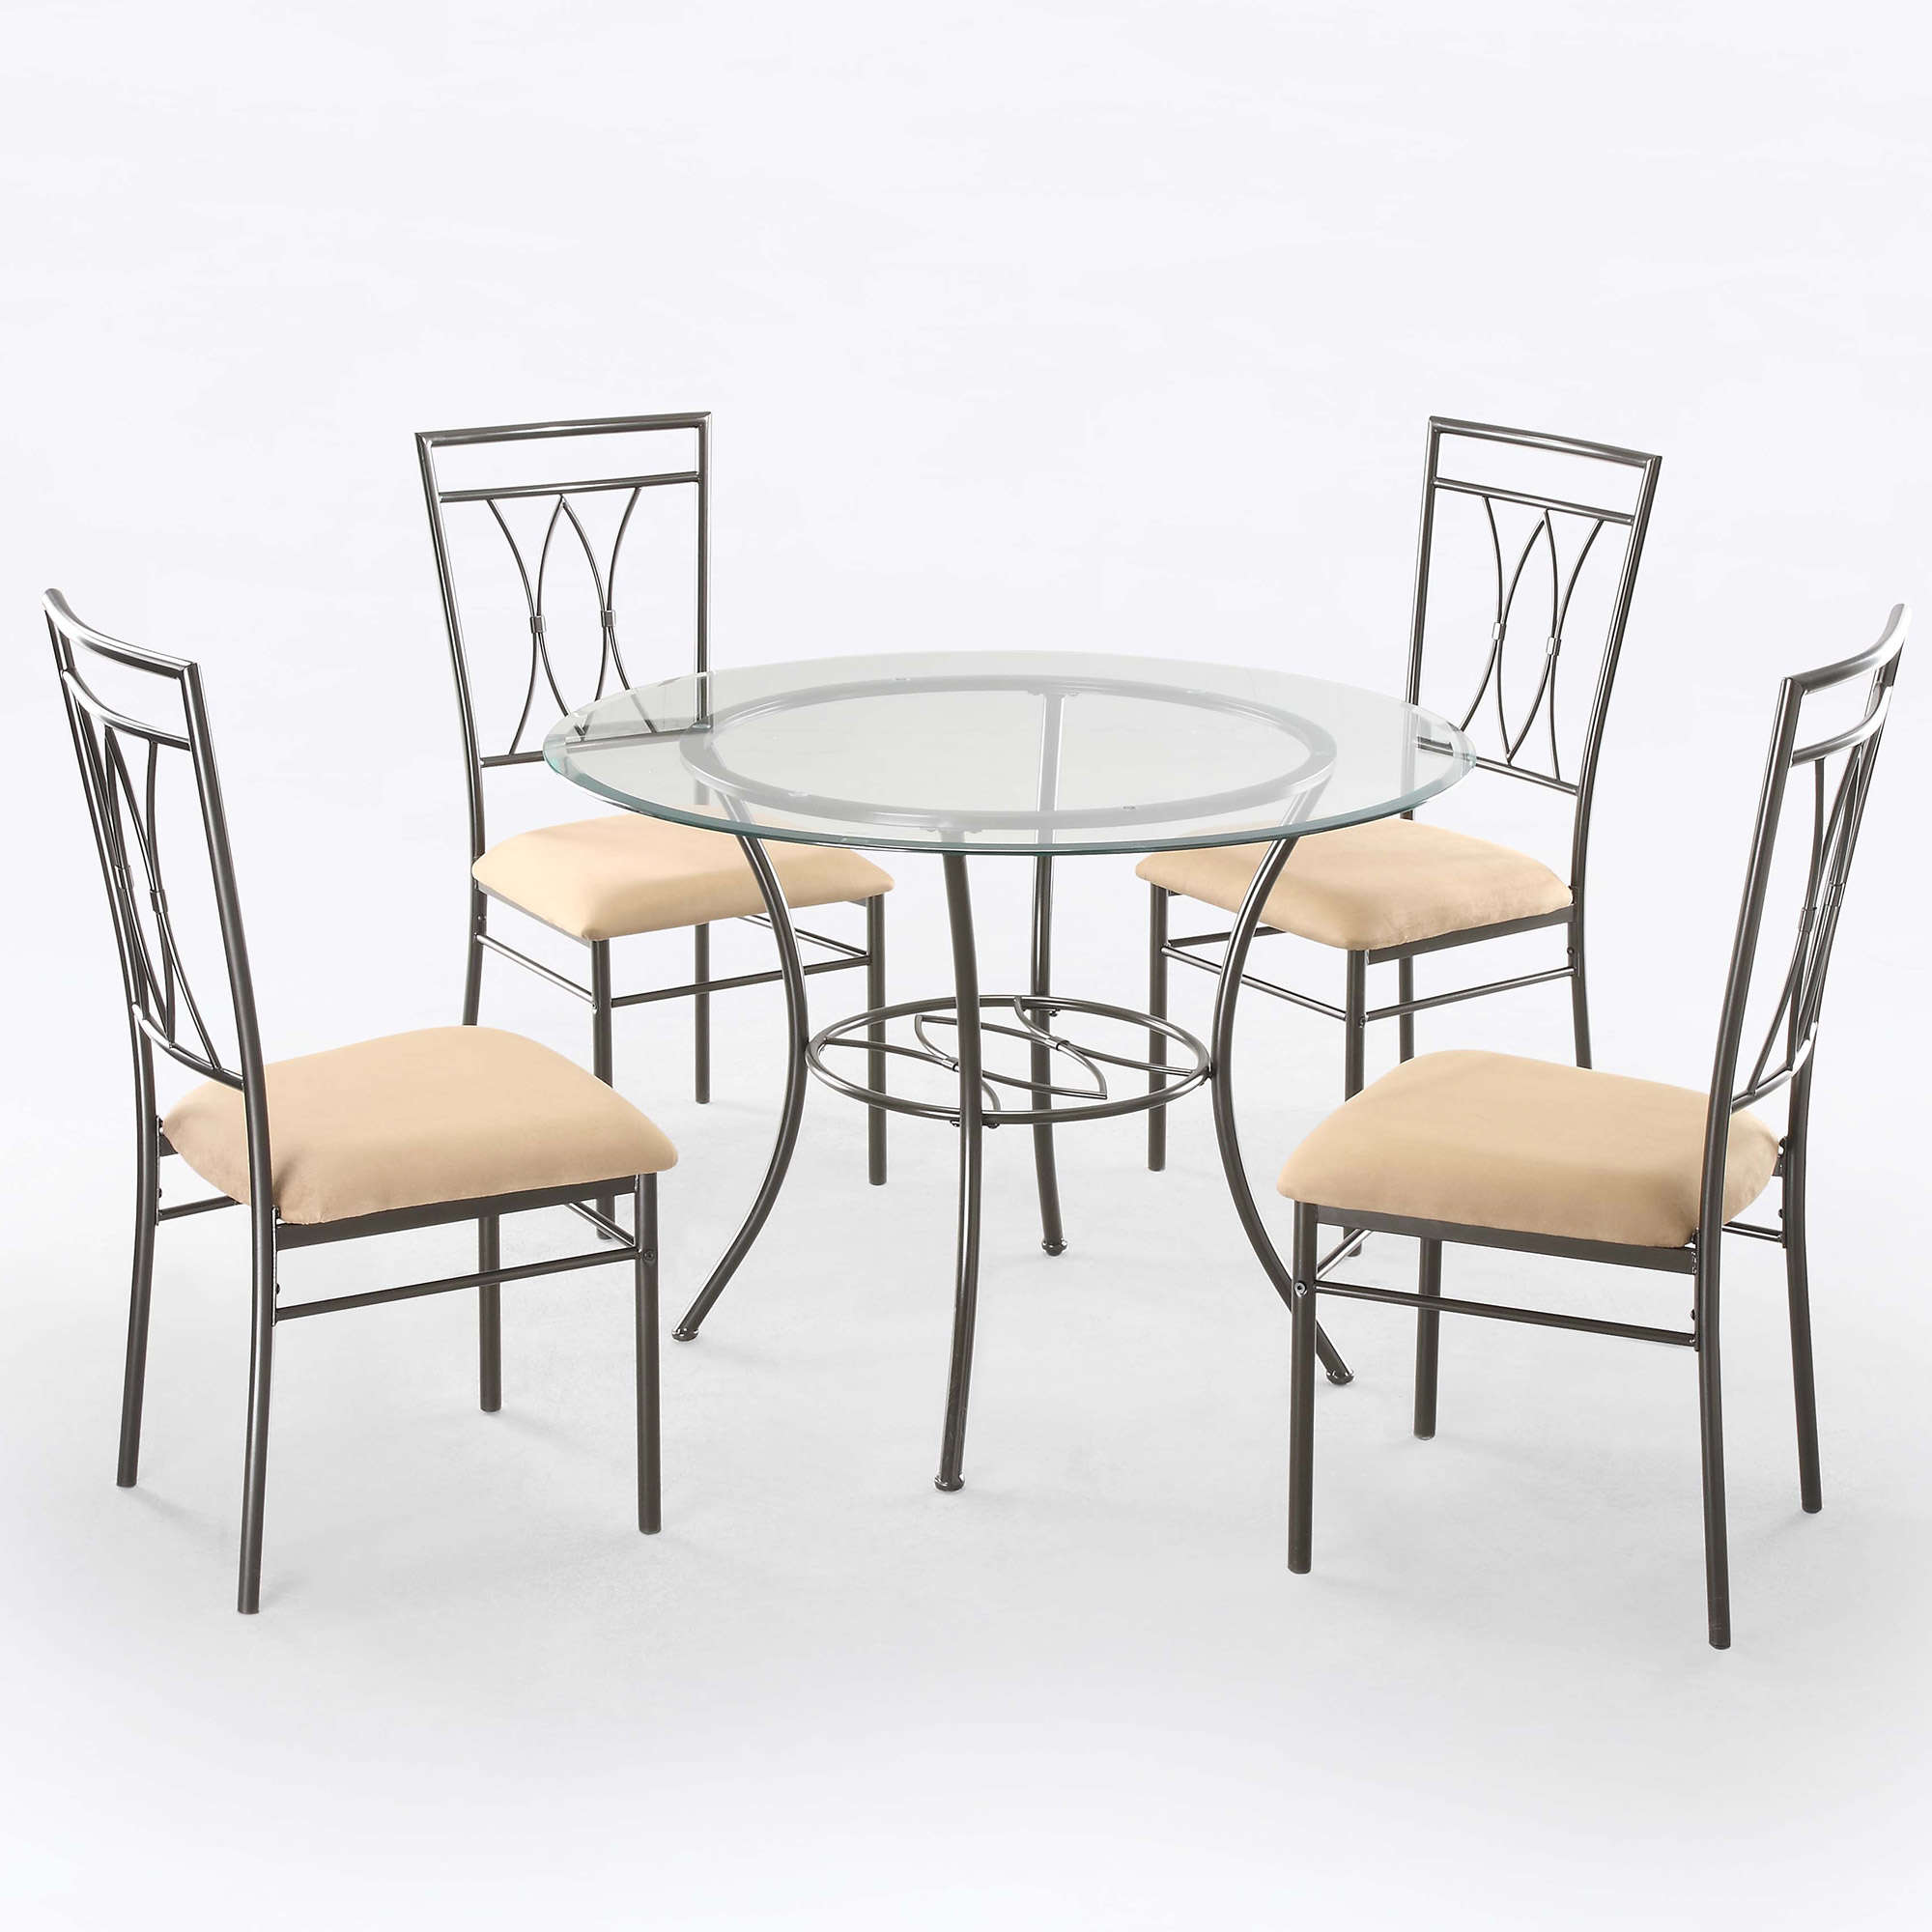 "Mainstays 5-Piece Glass and Metal Dining Set, 42"" Round Tabletop"